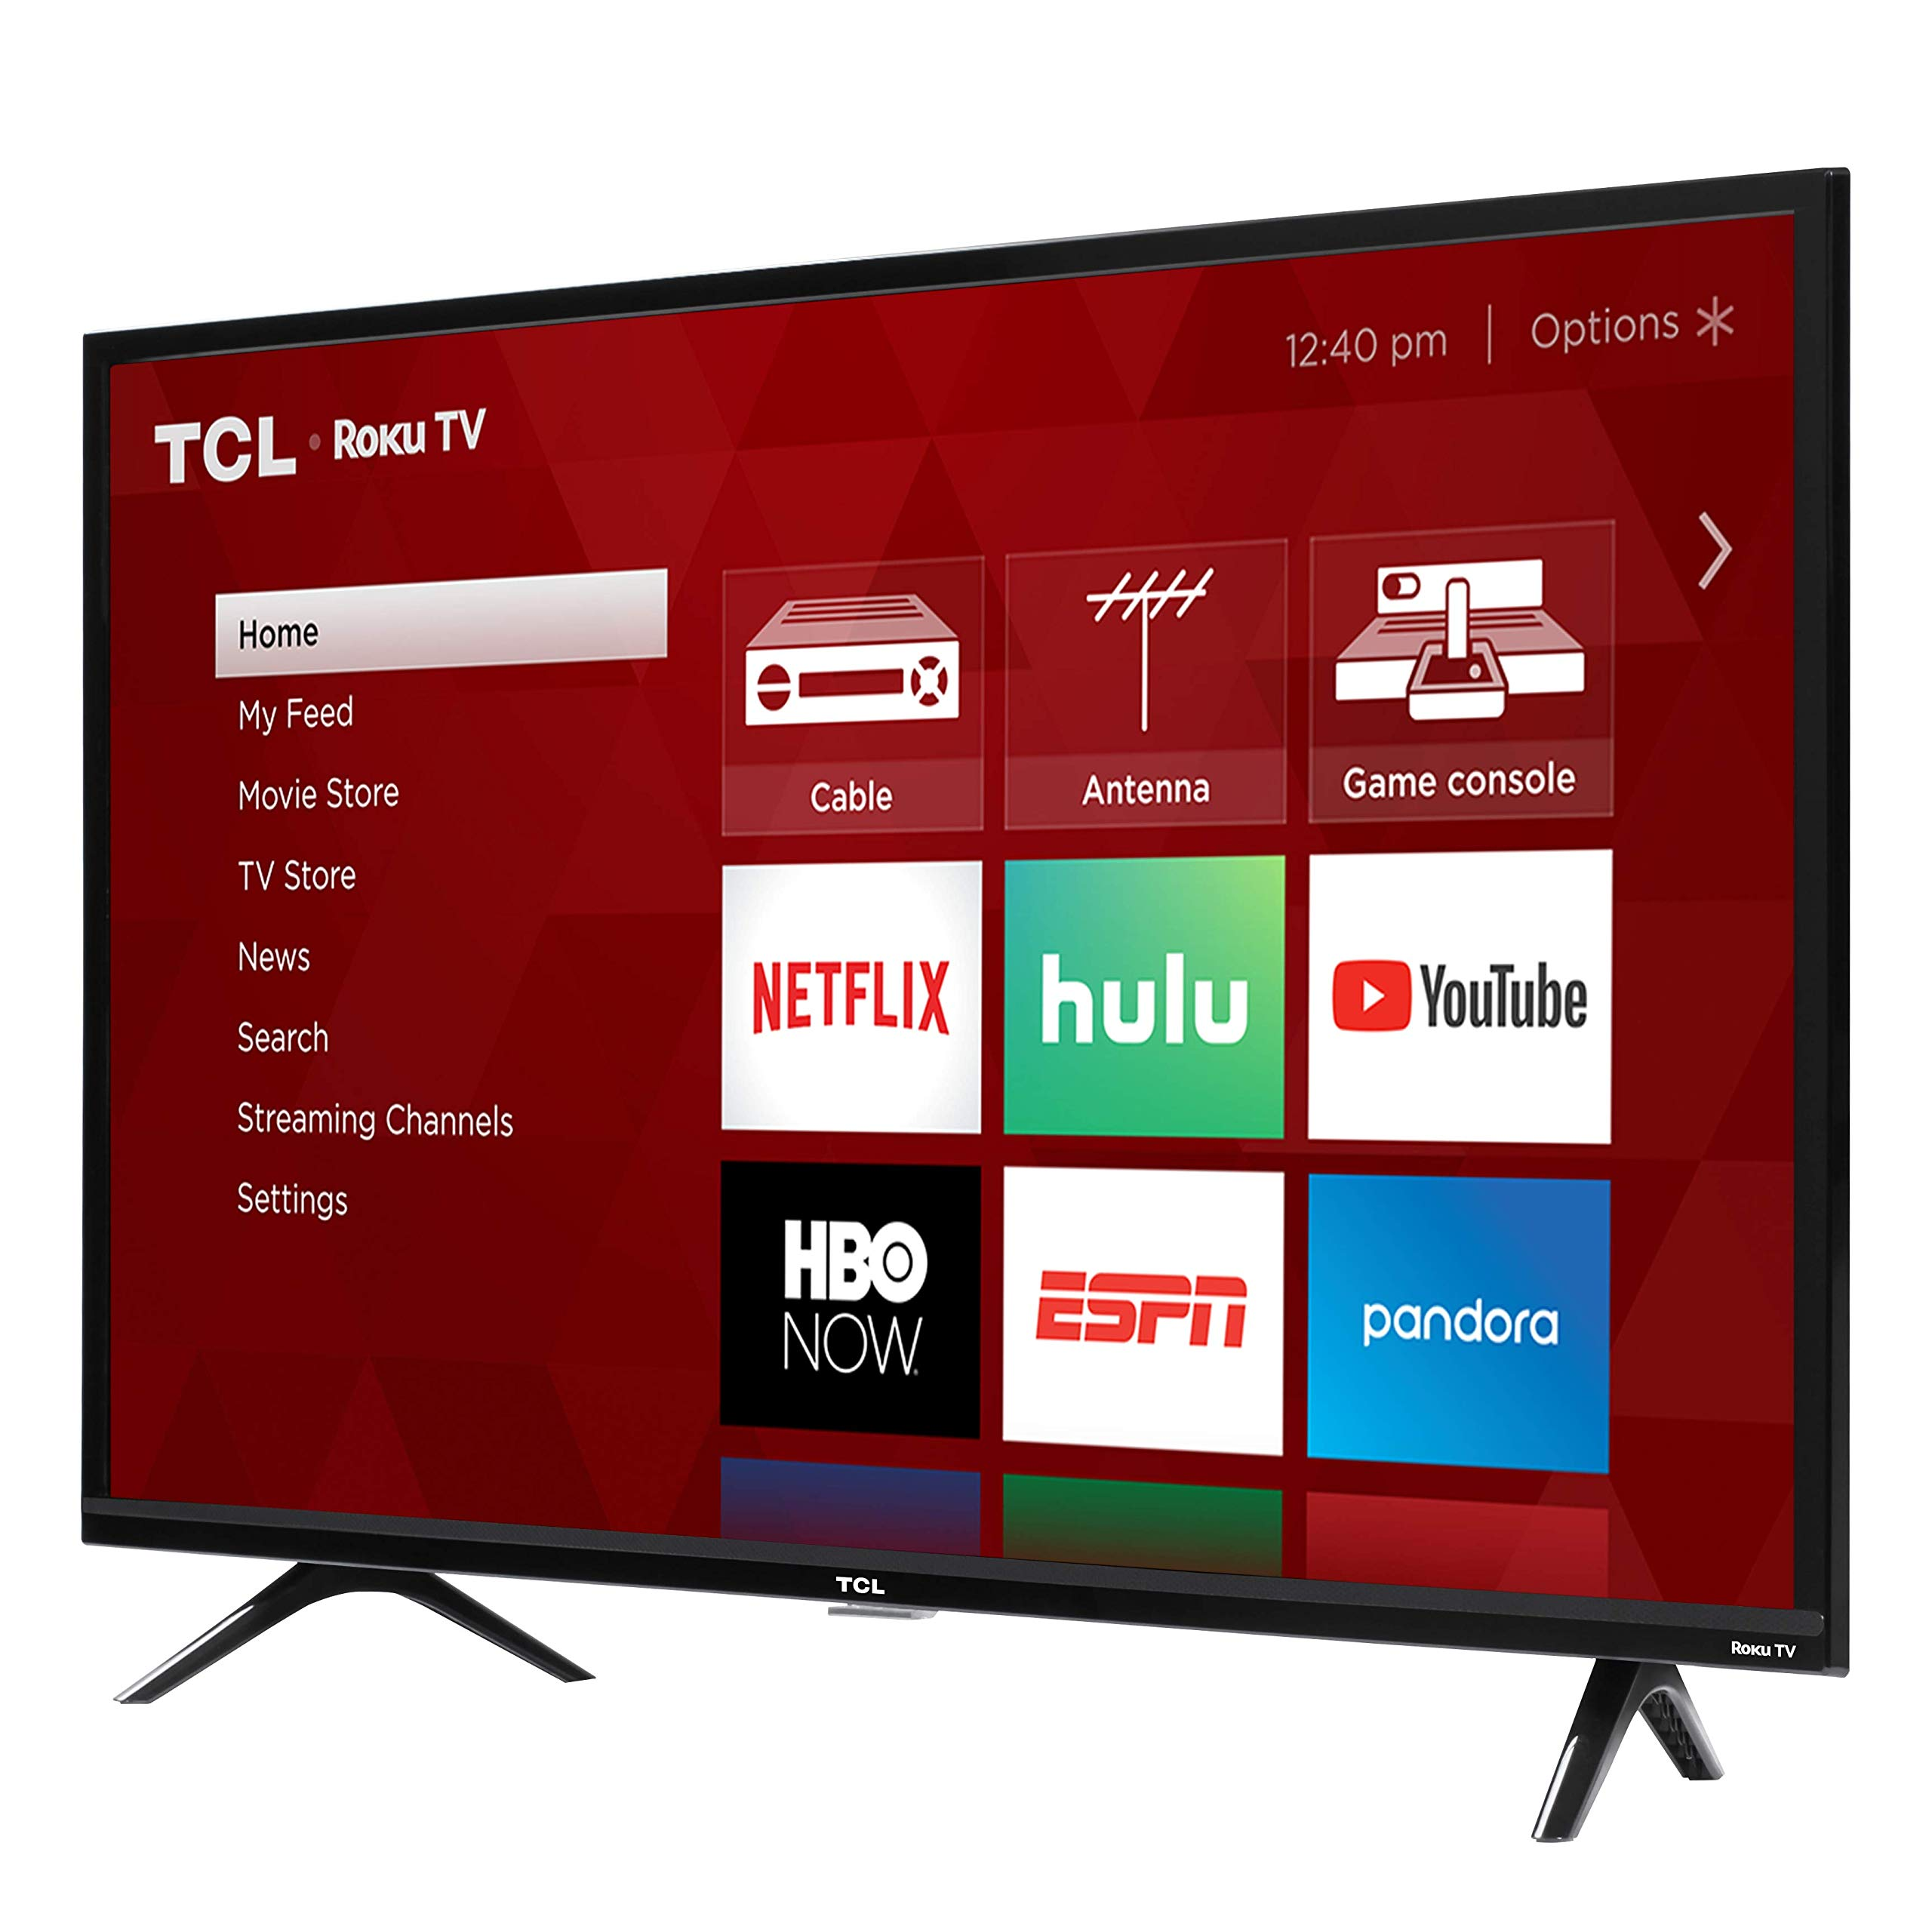 TCL 49S325 49 Inch 1080p Smart Roku LED TV (2019) by TCL (Image #2)